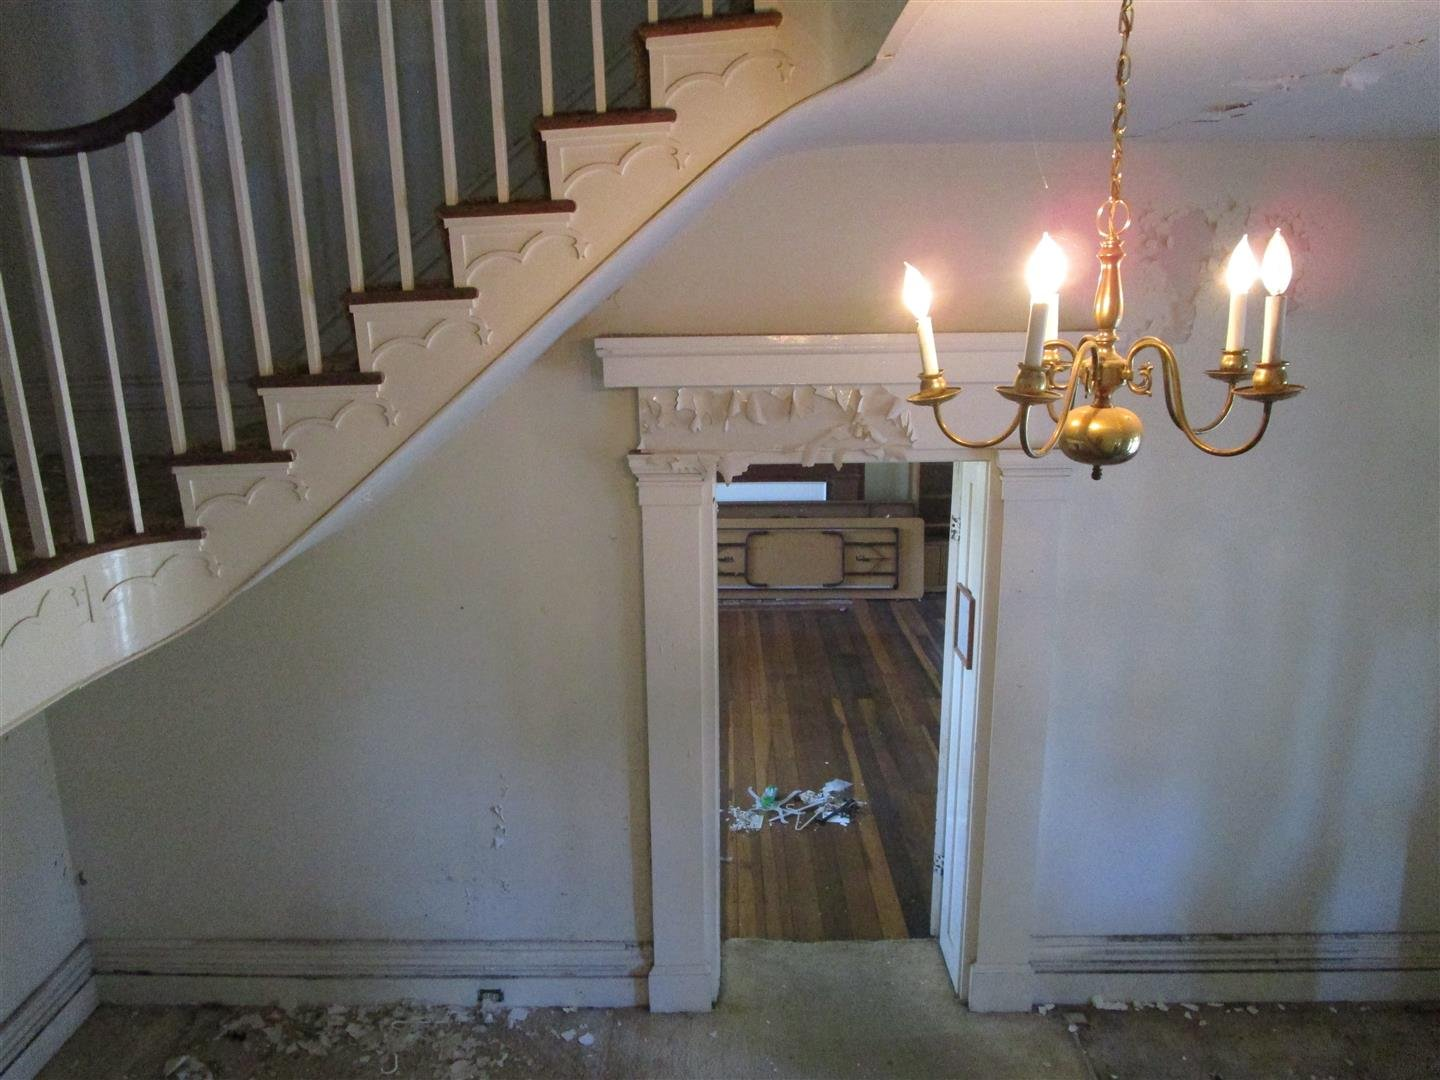 View showing Cantilevered Grand Stair and Decorative Door Casing in Main Hall.